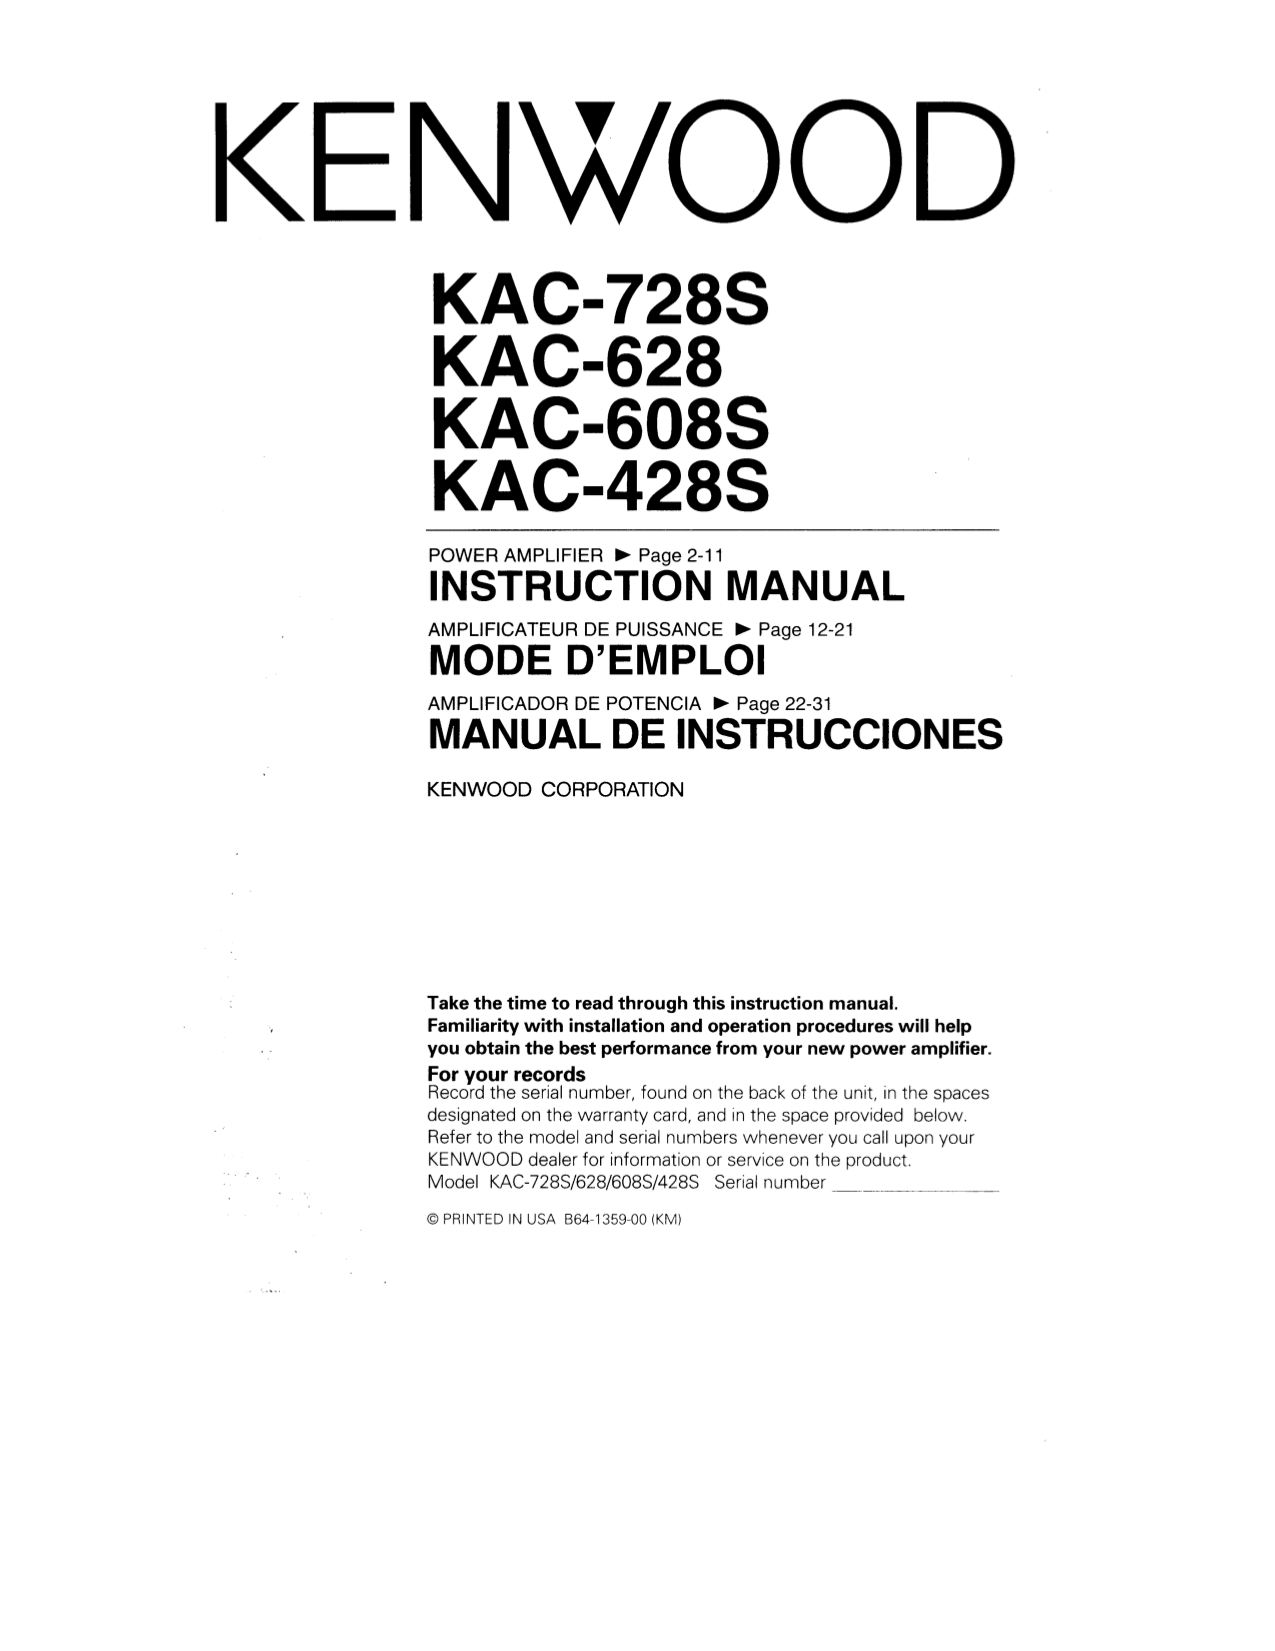 113kac728s.pdf 0 download free pdf for kenwood kac 728s car amplifier manual kenwood kac 7285 wiring diagram at virtualis.co